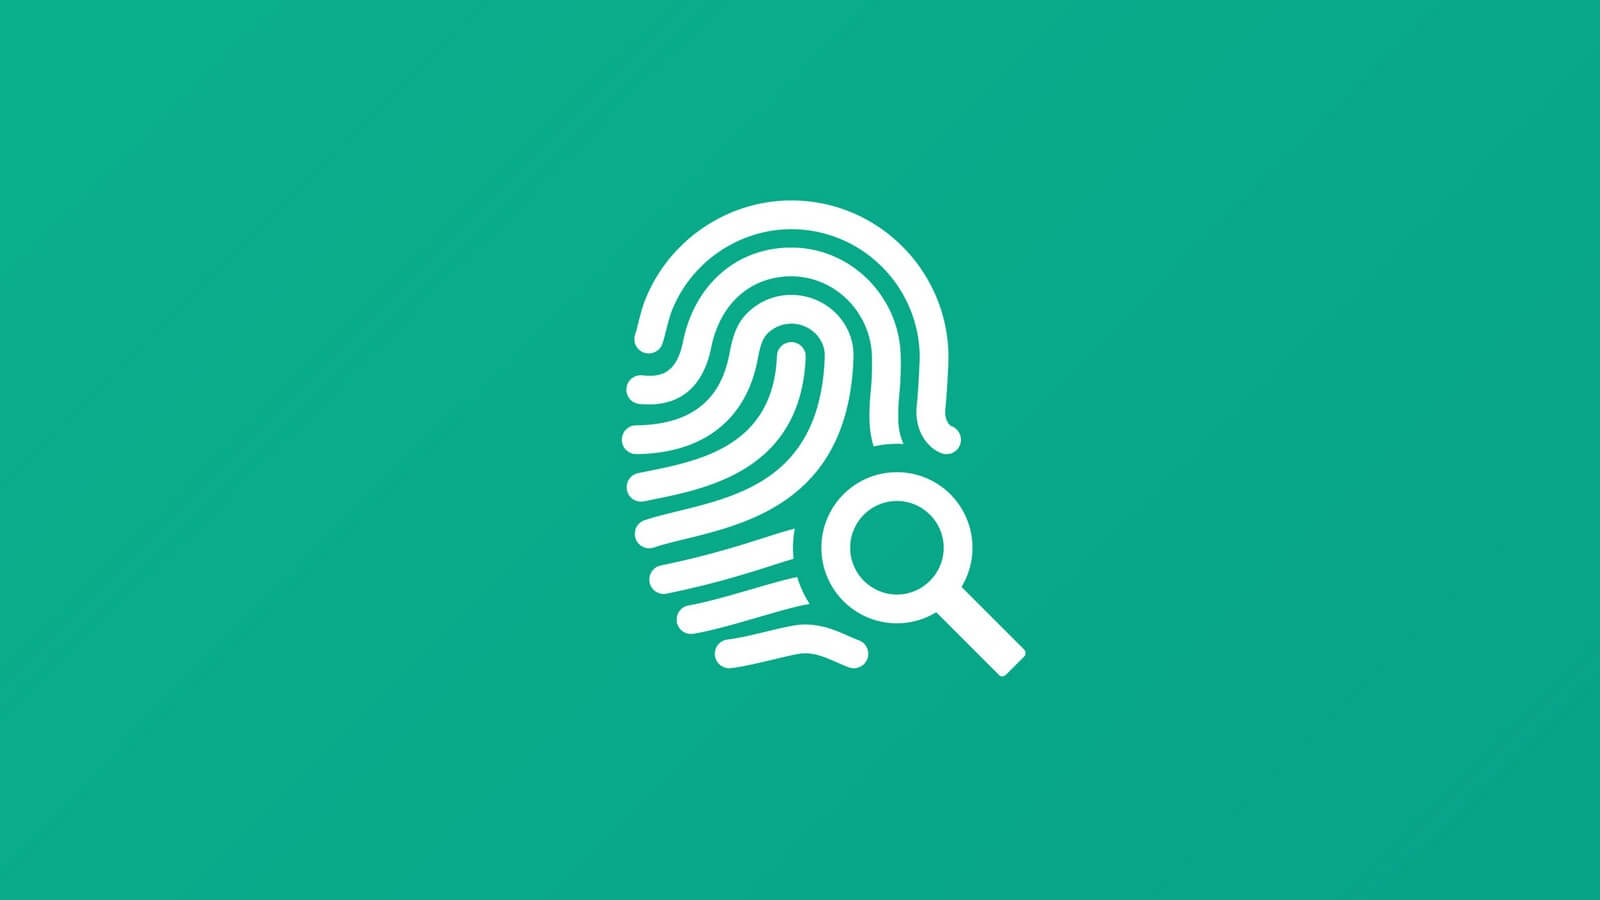 Fingerprint protection